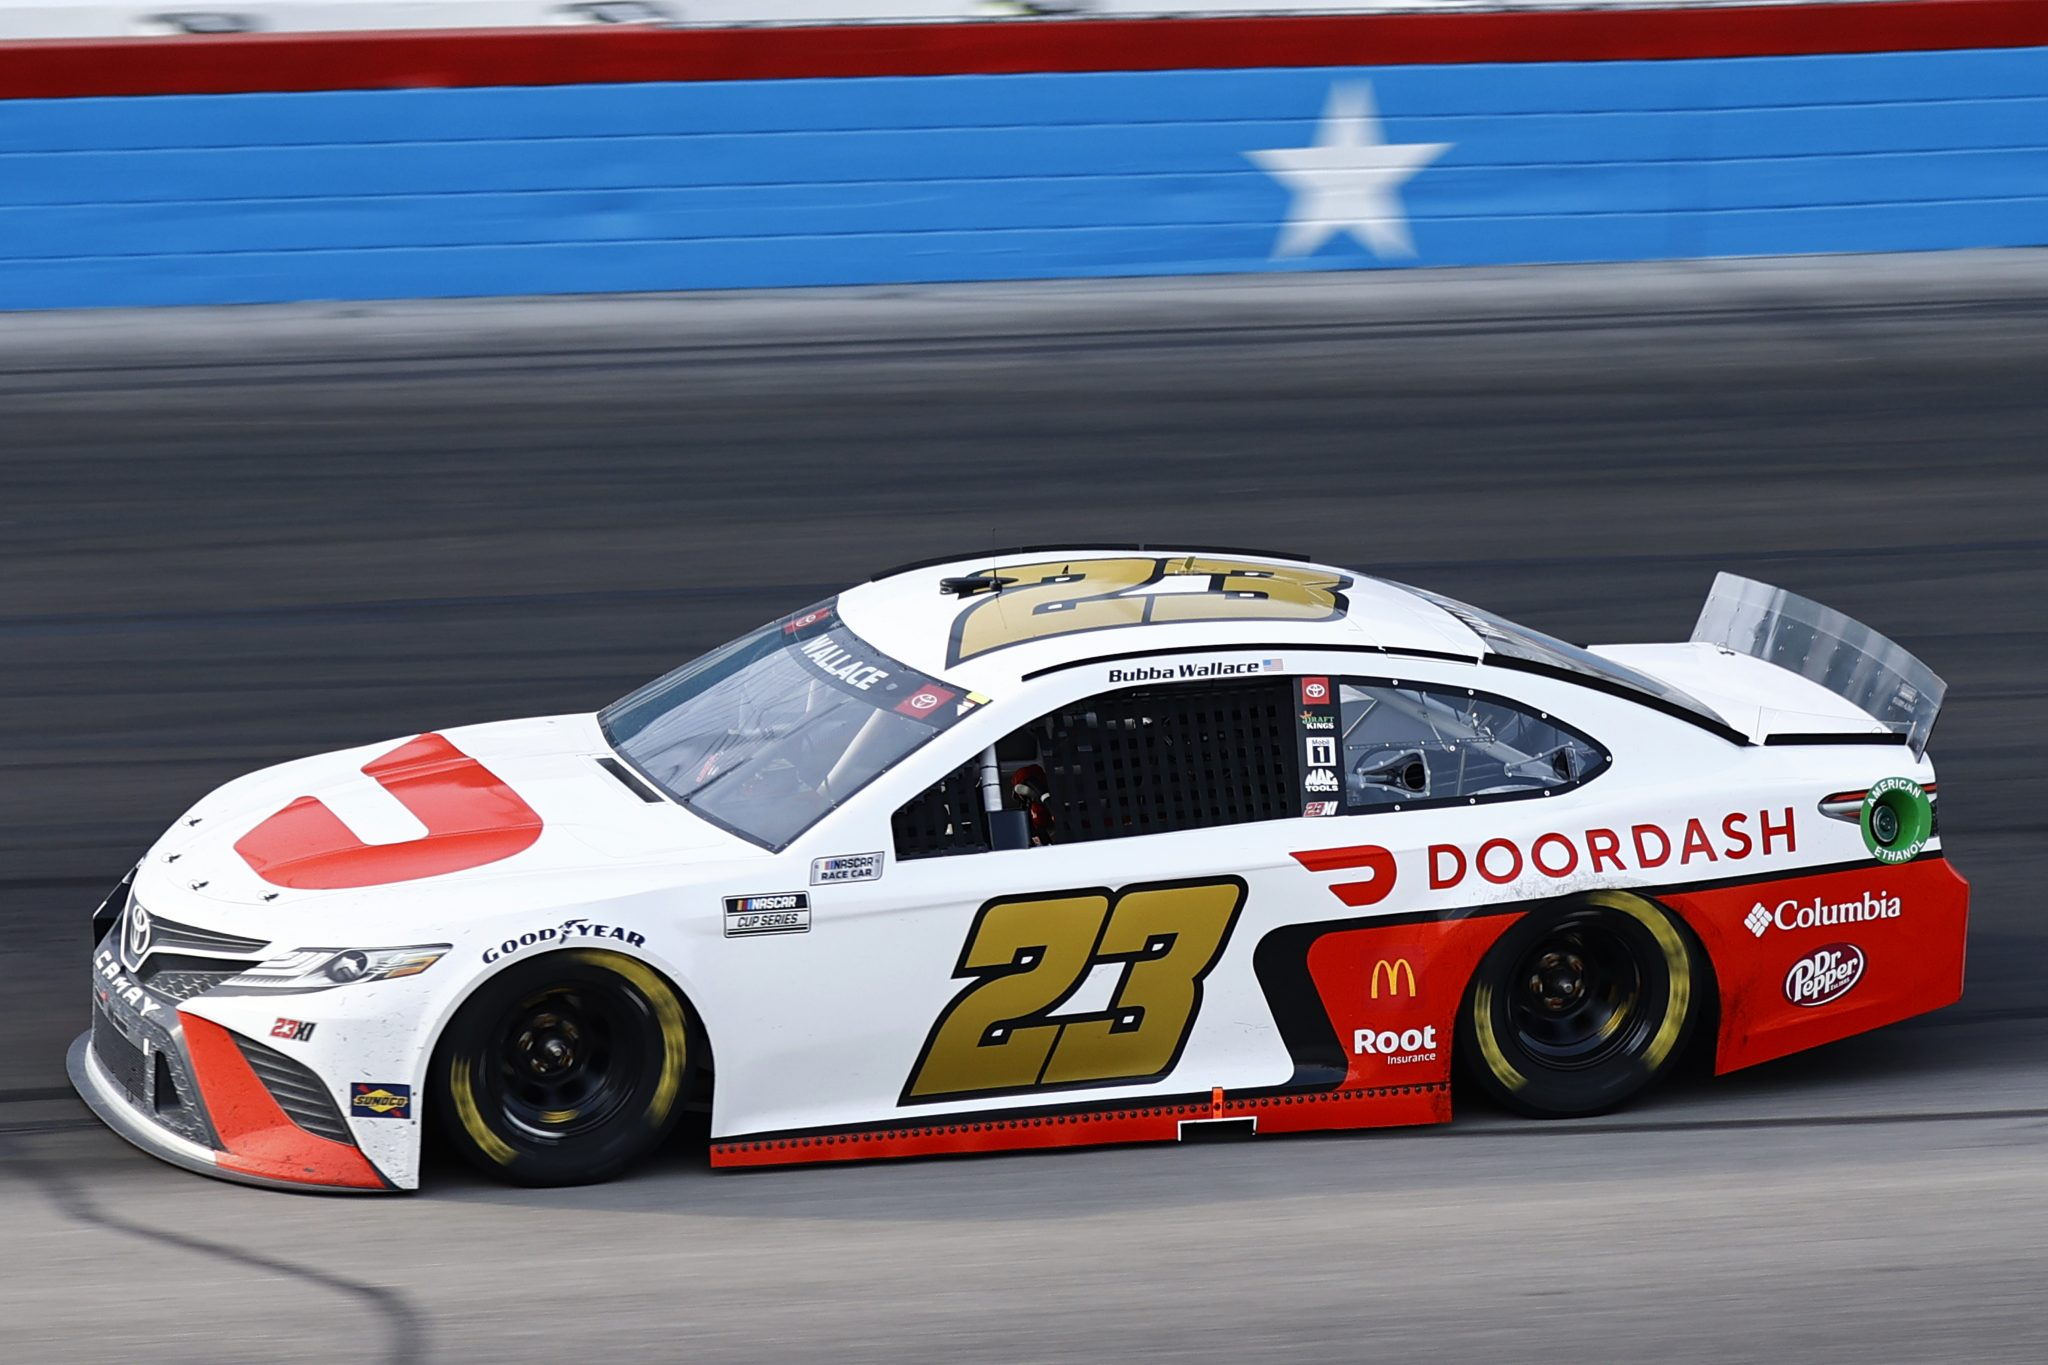 FORT WORTH, TEXAS - JUNE 13: Bubba Wallace, driver of the #23 Door Dash Toyota, drives during the NASCAR All-Star Open at Texas Motor Speedway on June 13, 2021 in Fort Worth, Texas. (Photo by Jared C. Tilton/Getty Images)   Getty Images